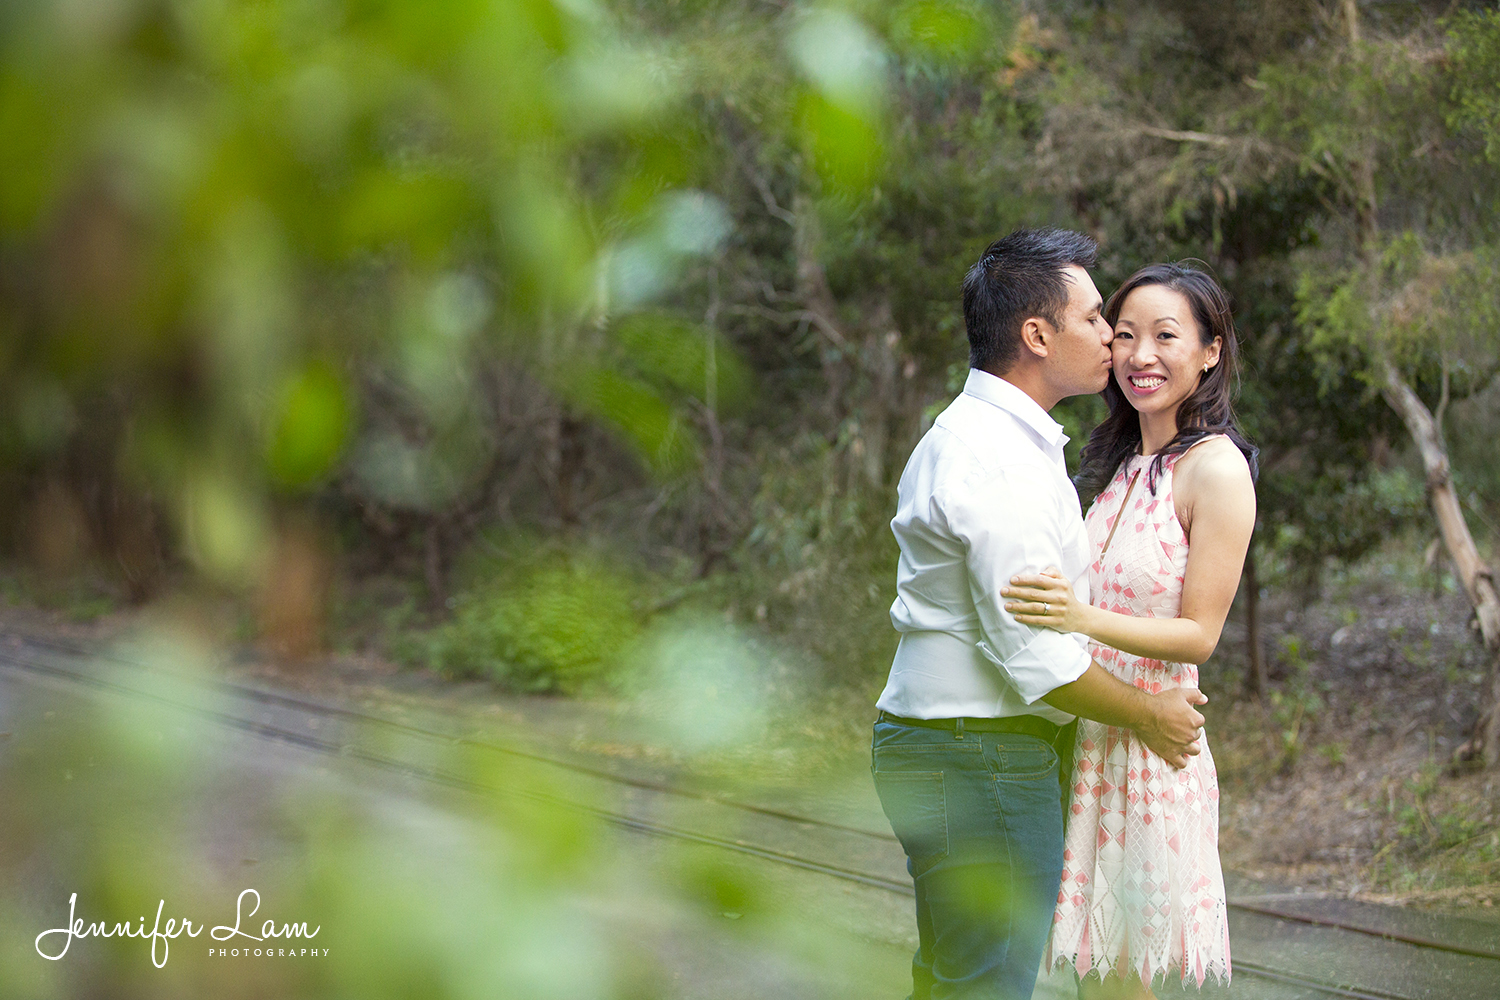 Sydney Wedding Photographer - Jennifer Lam Photography (25).jpg